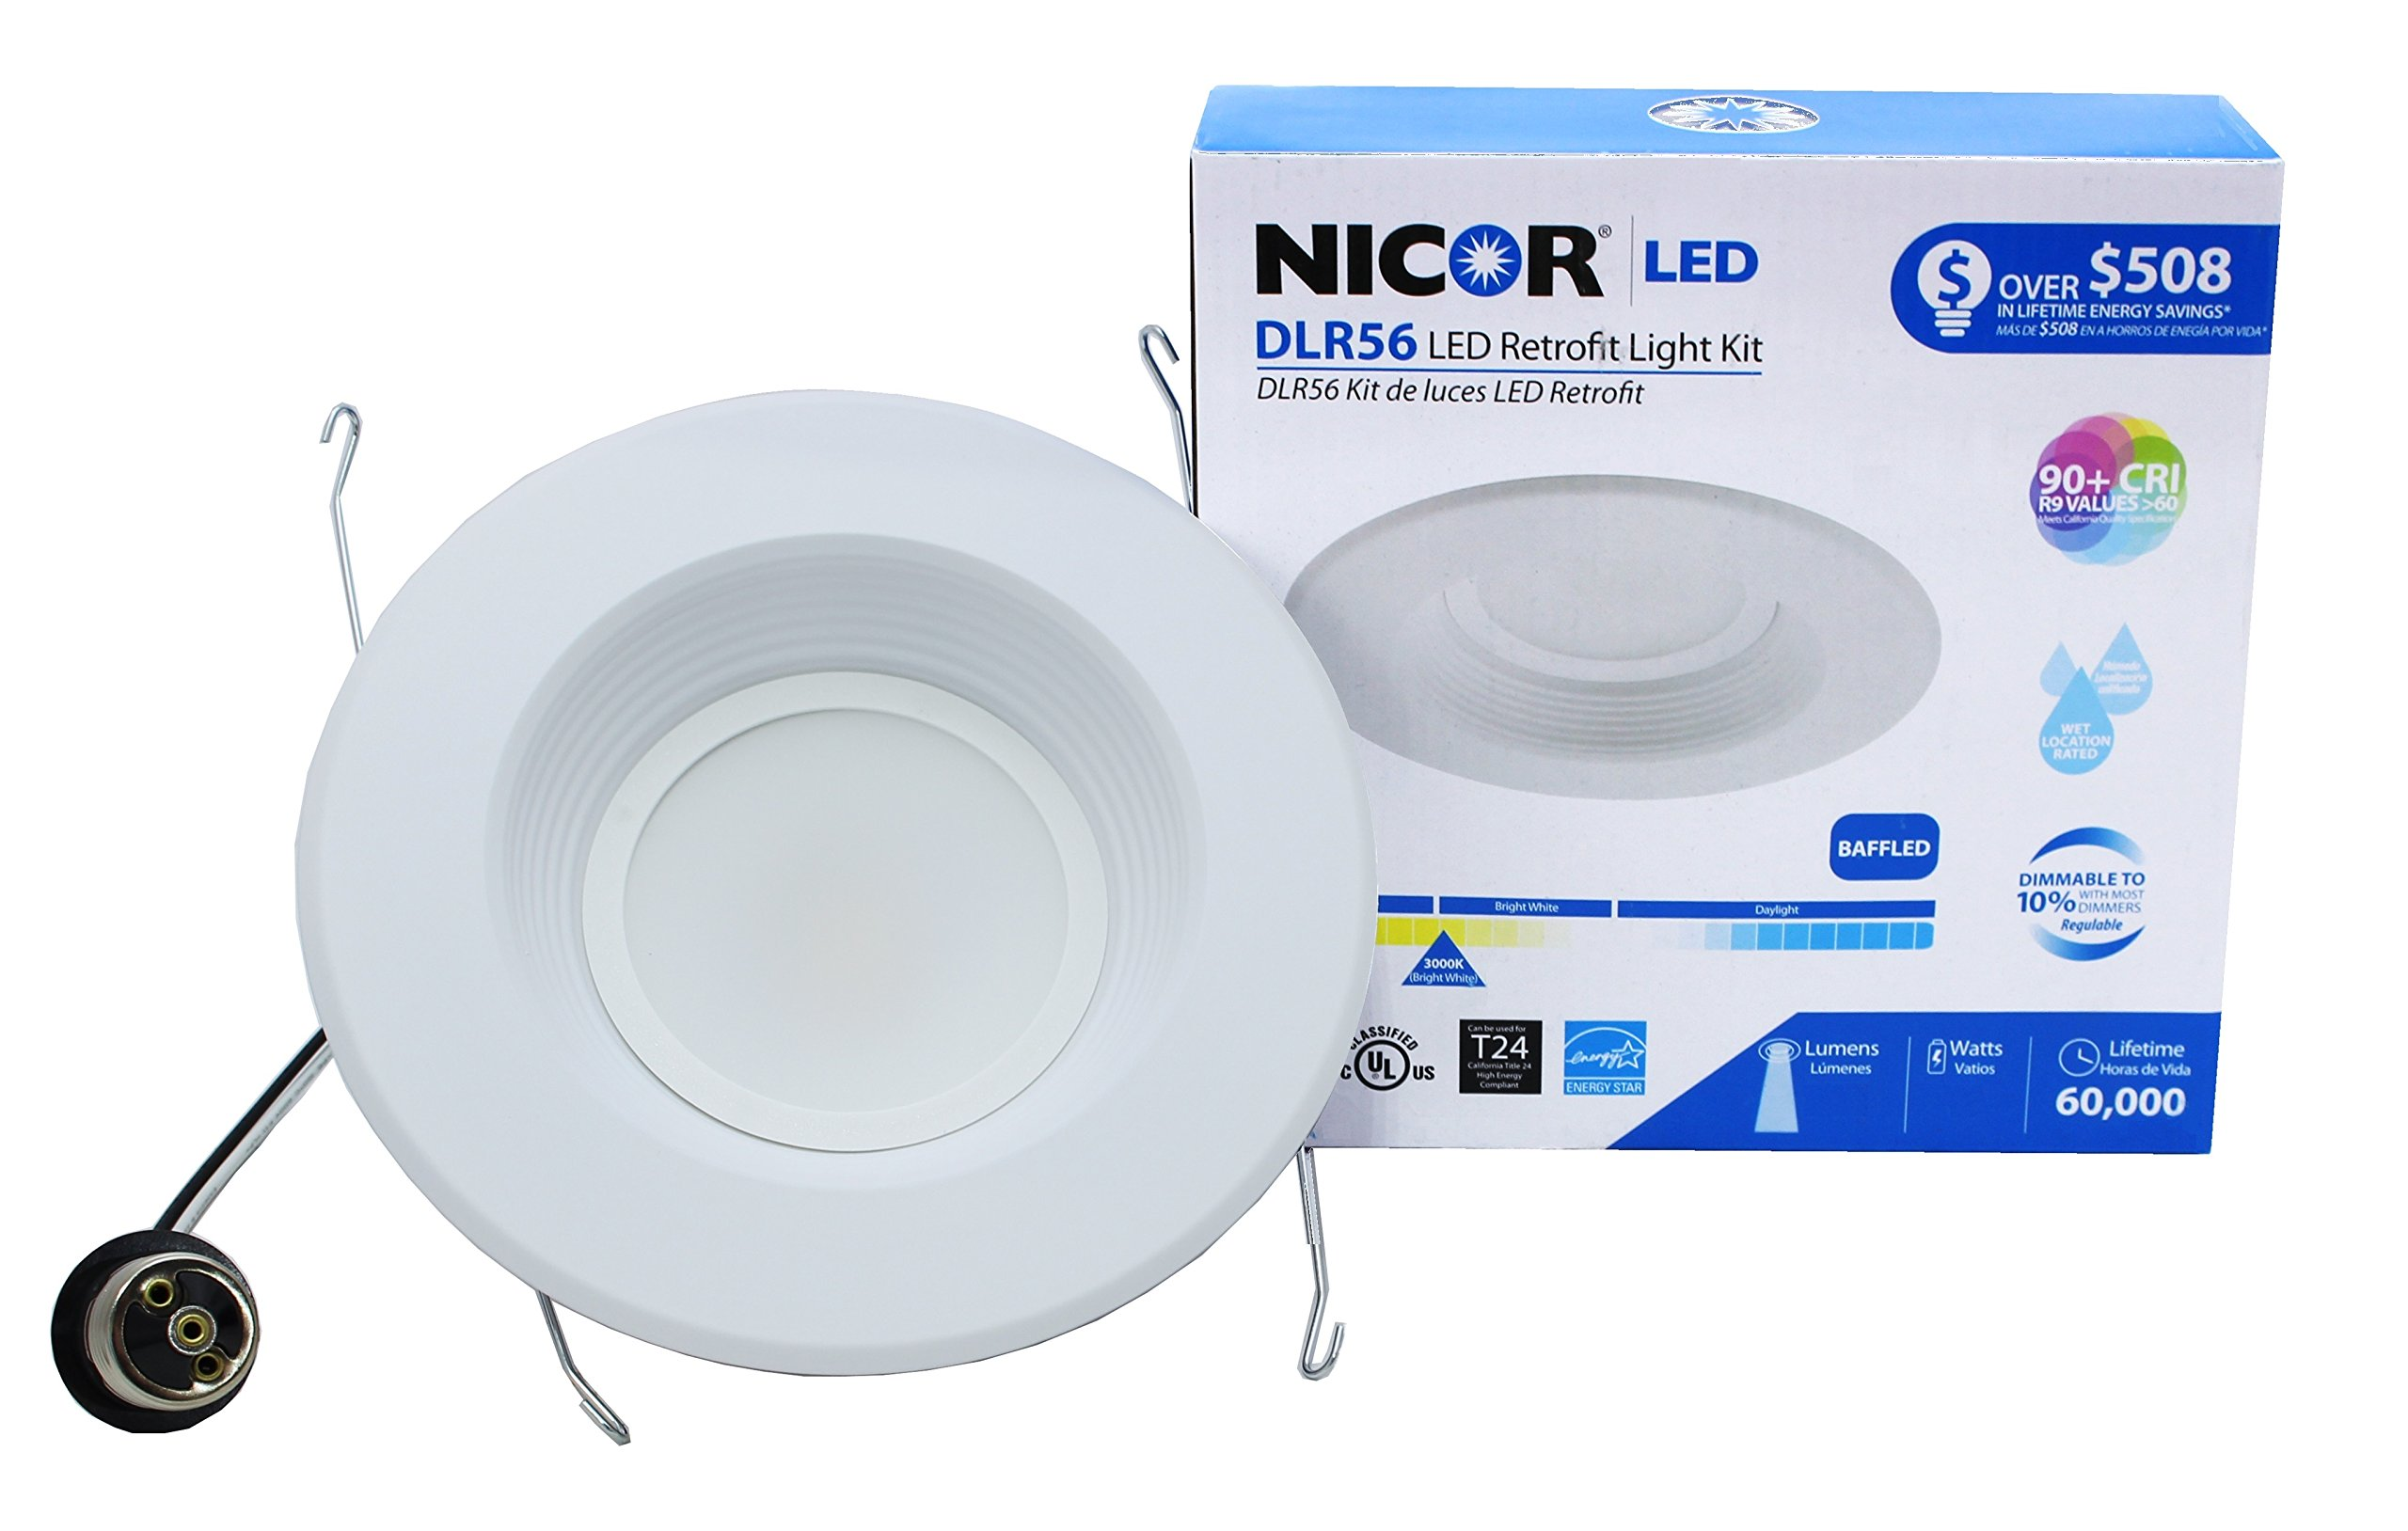 NICOR Lighting 5/6-Inch Dimmable 1200-Lumen 3000K LED Downlight Retrofit Kit for Recessed Housings, White Baffle Trim (DLR56-3012-3K-WH-BF)